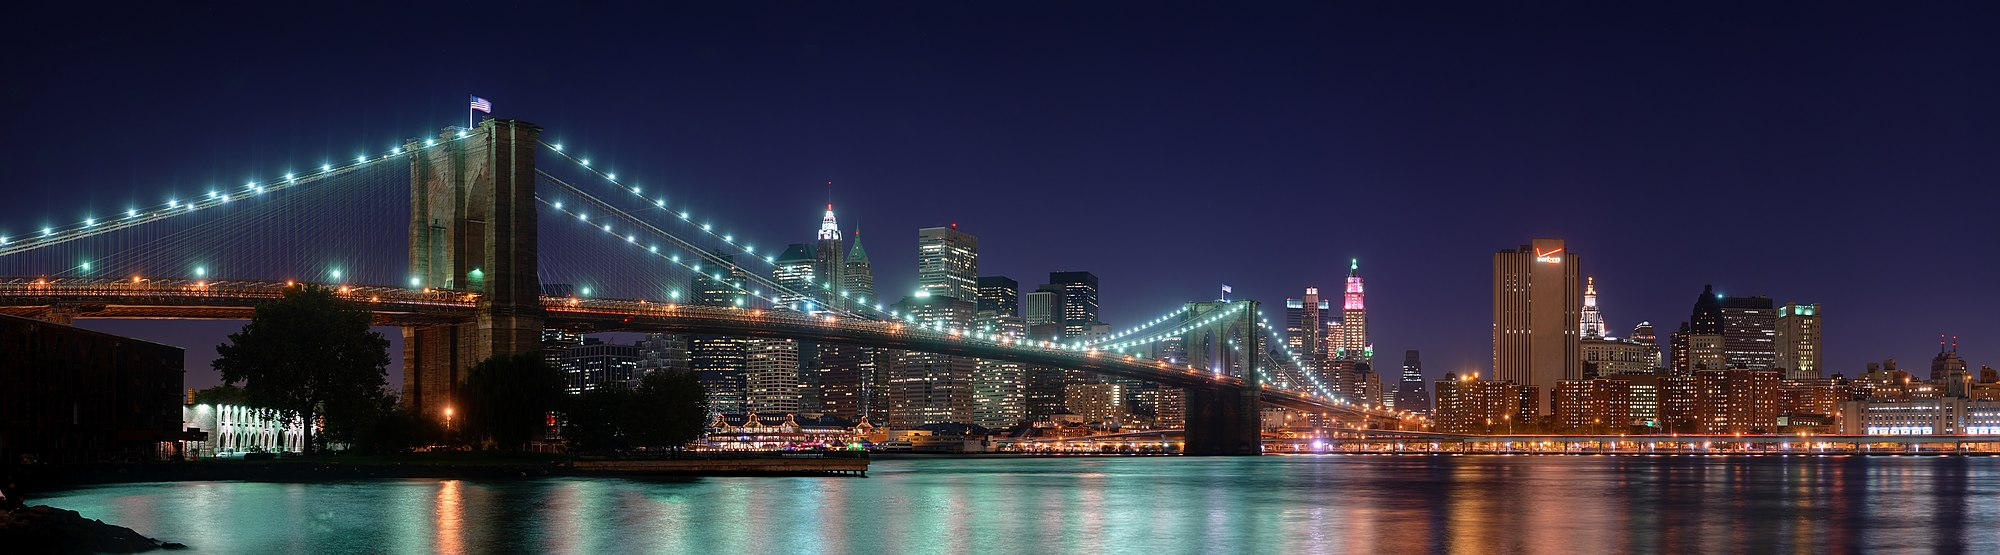 Panorama Of Brooklyn Bridge And Lower Manhattan At Night